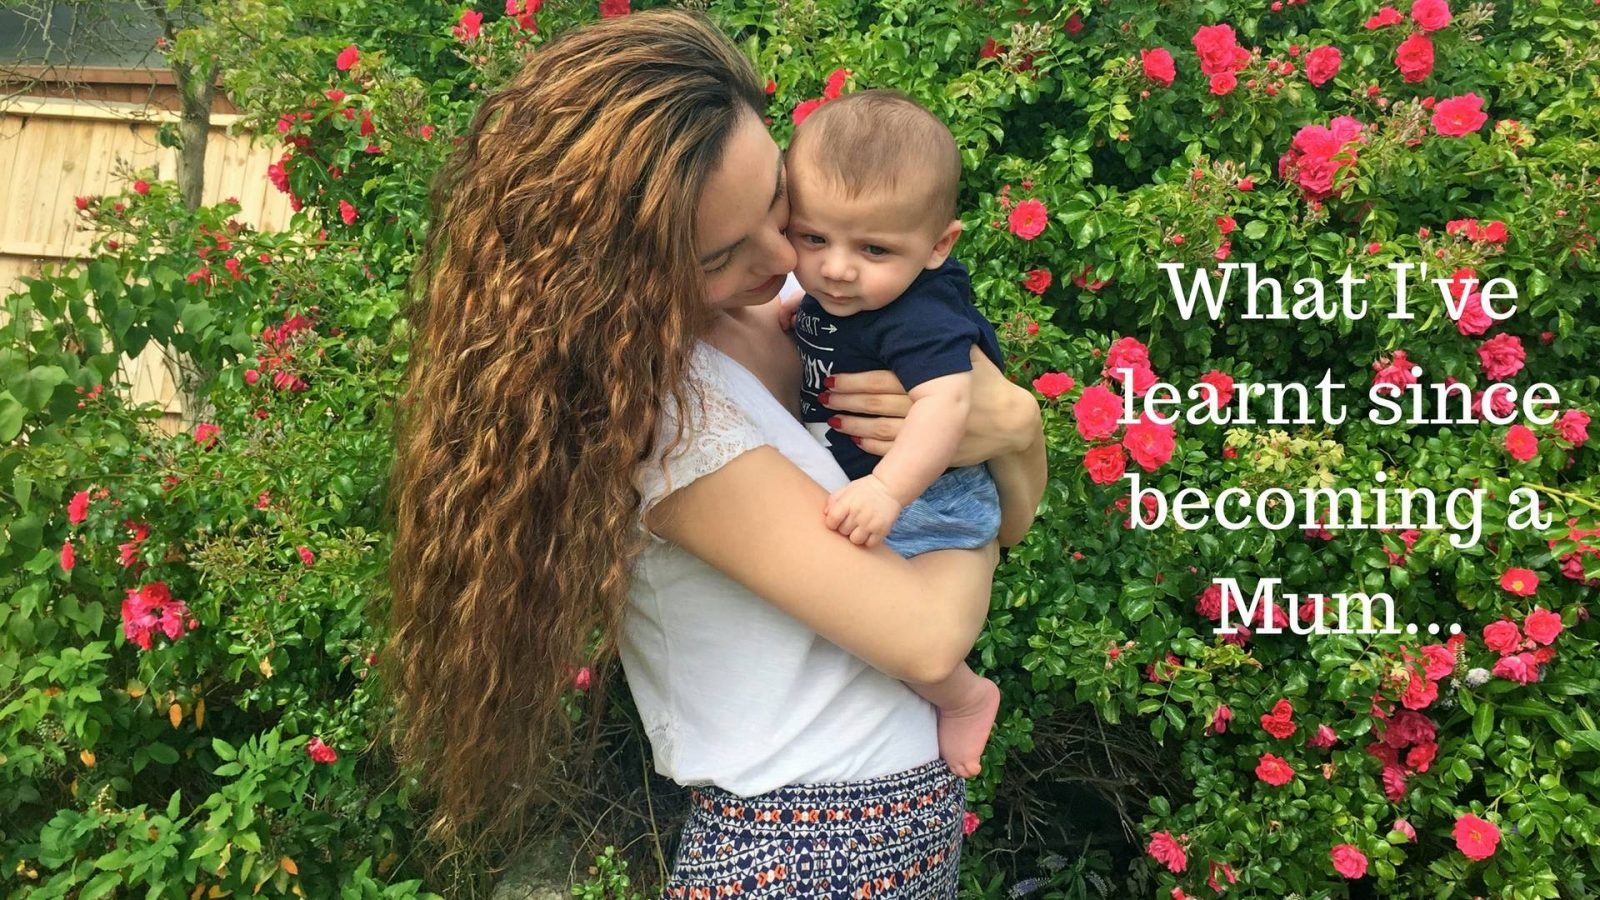 Mother's Day Special: What I've learnt since becoming a Mum